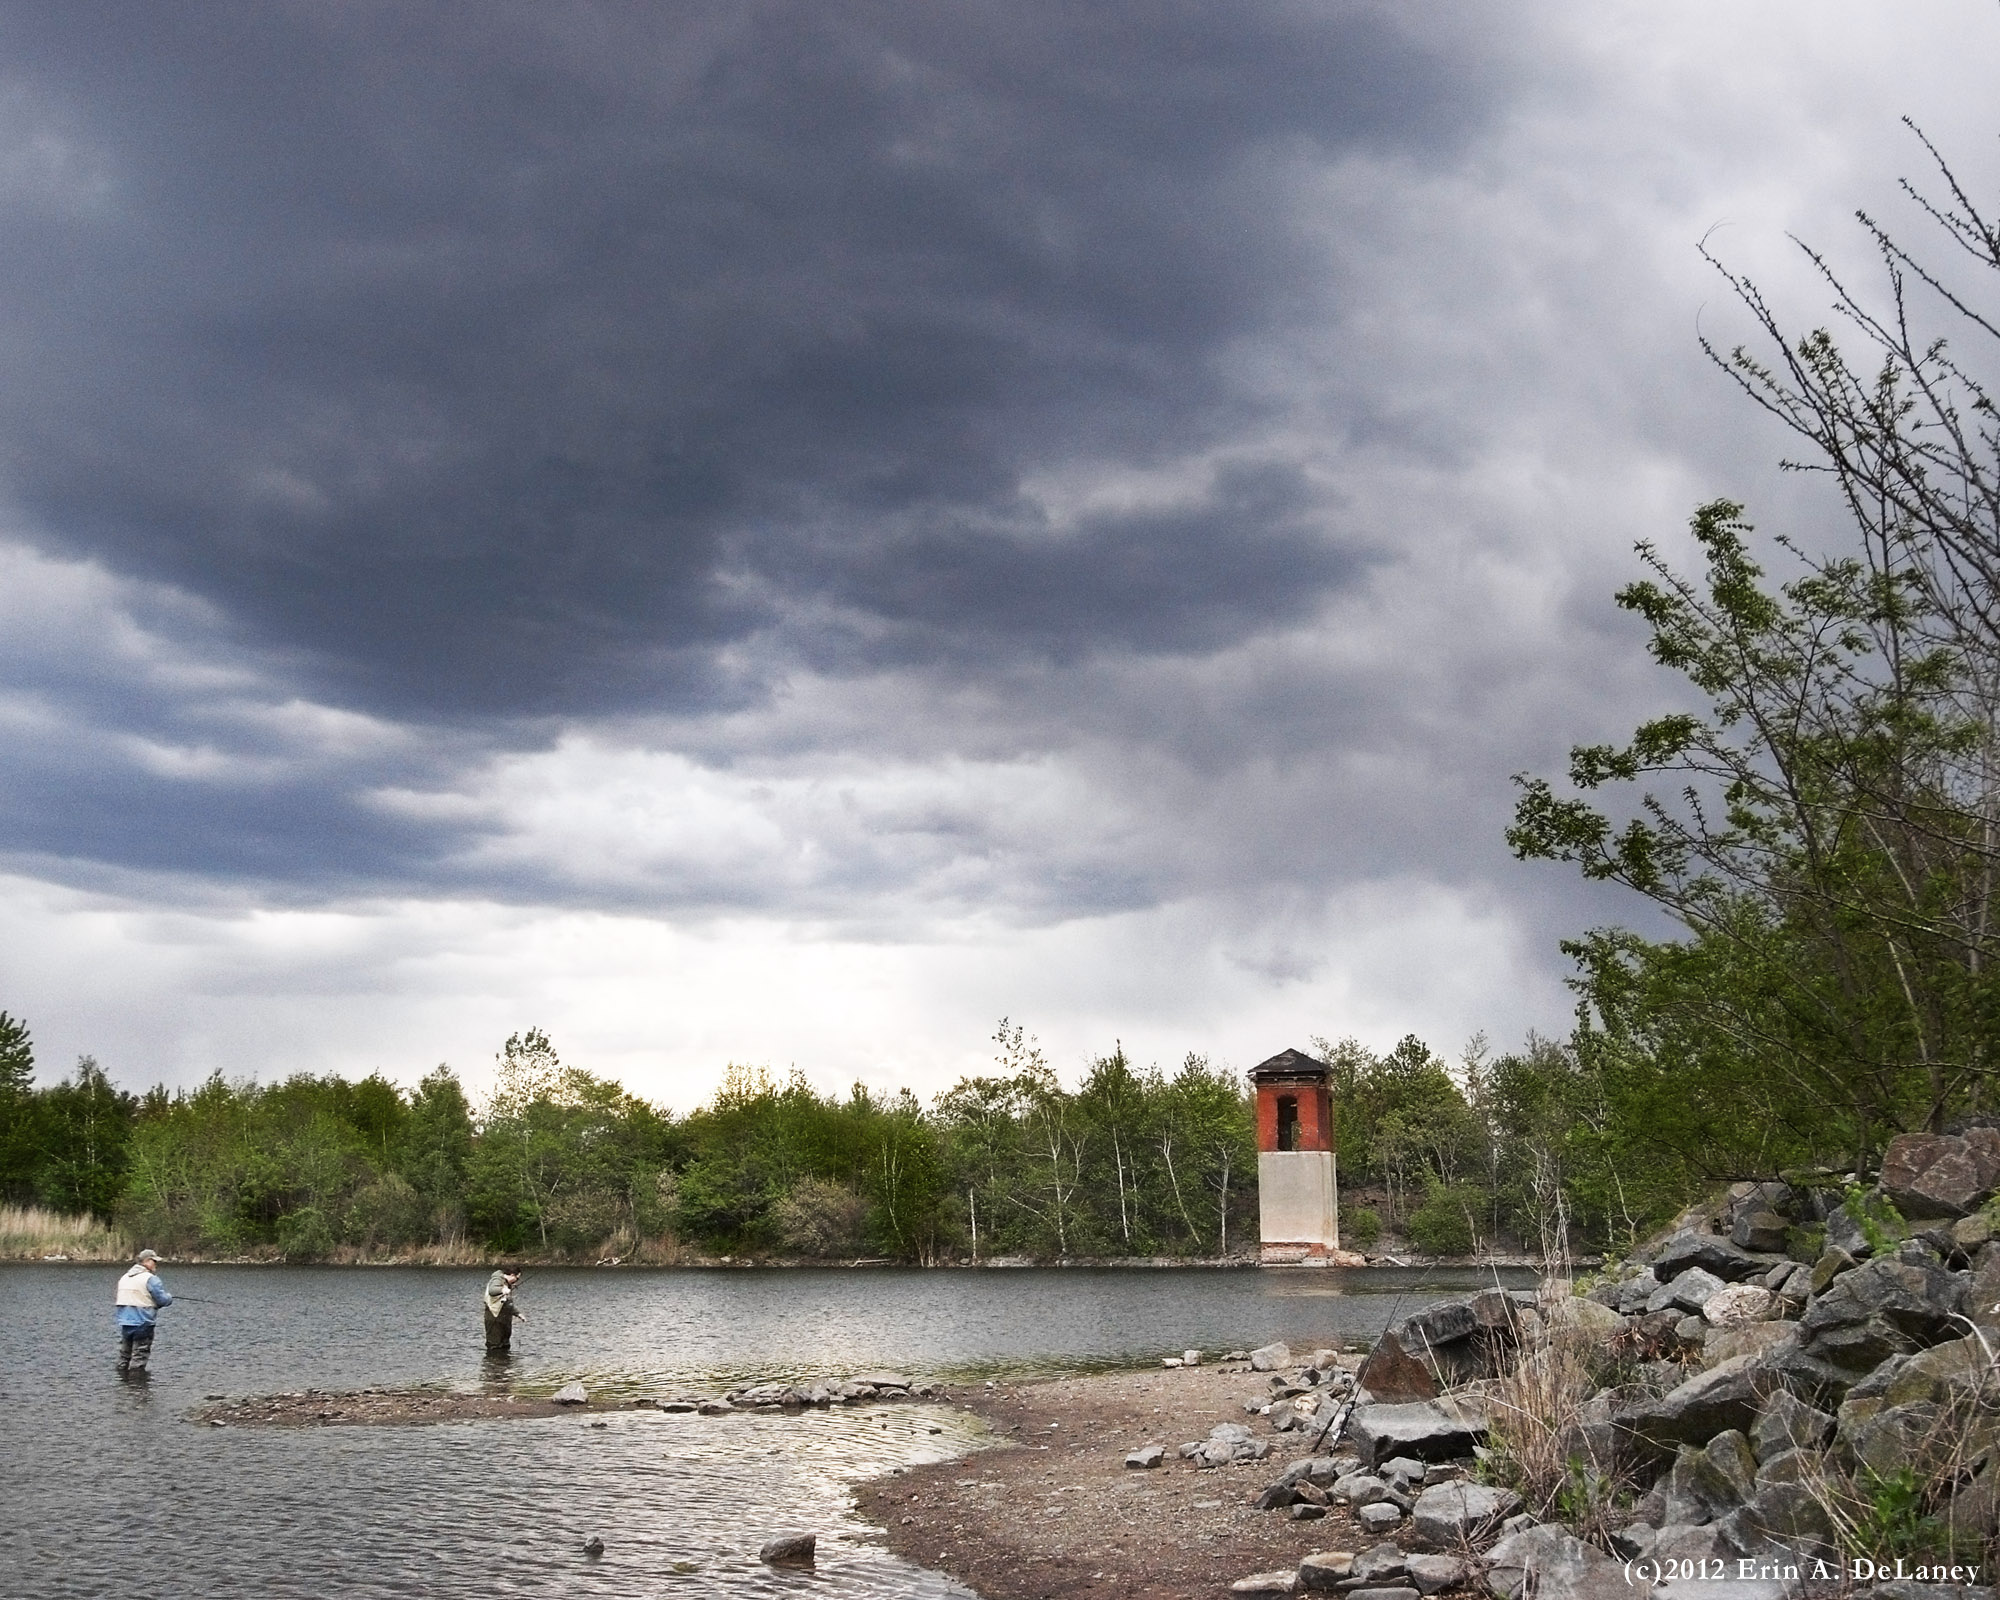 Fishing on a Stormy Day in the JC Reservoir, 2012